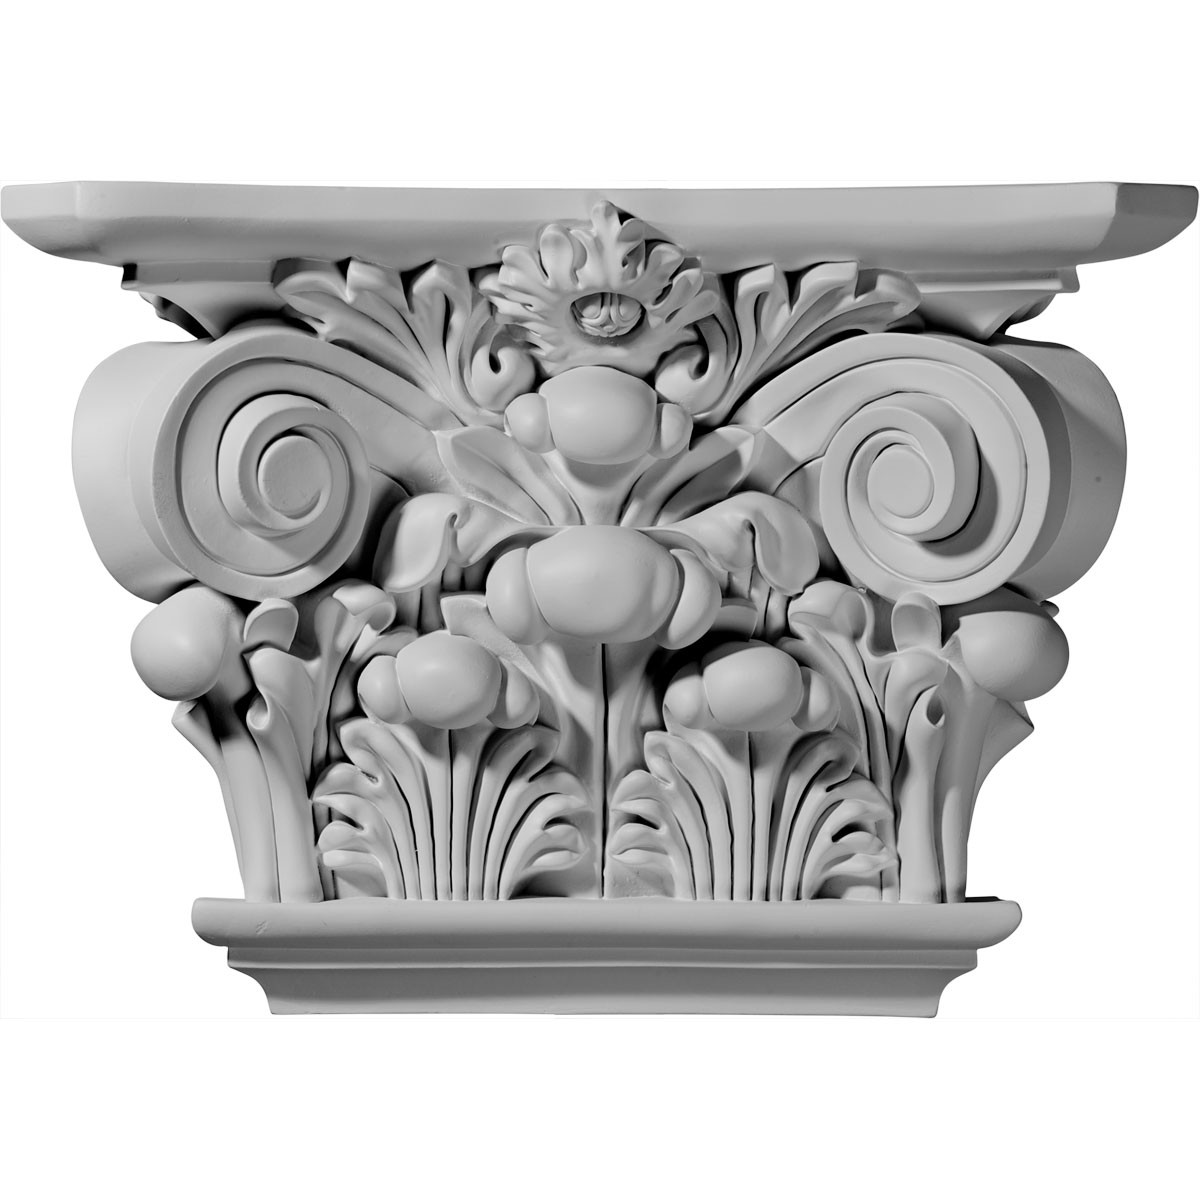 "EM-CAP17X11X05AC - 17 1/2""W x 11 7/8""H x 5 1/4""D Acanthus Leaf Capital (Fits Pilasters up to 9 5/8""W x 2""D)"